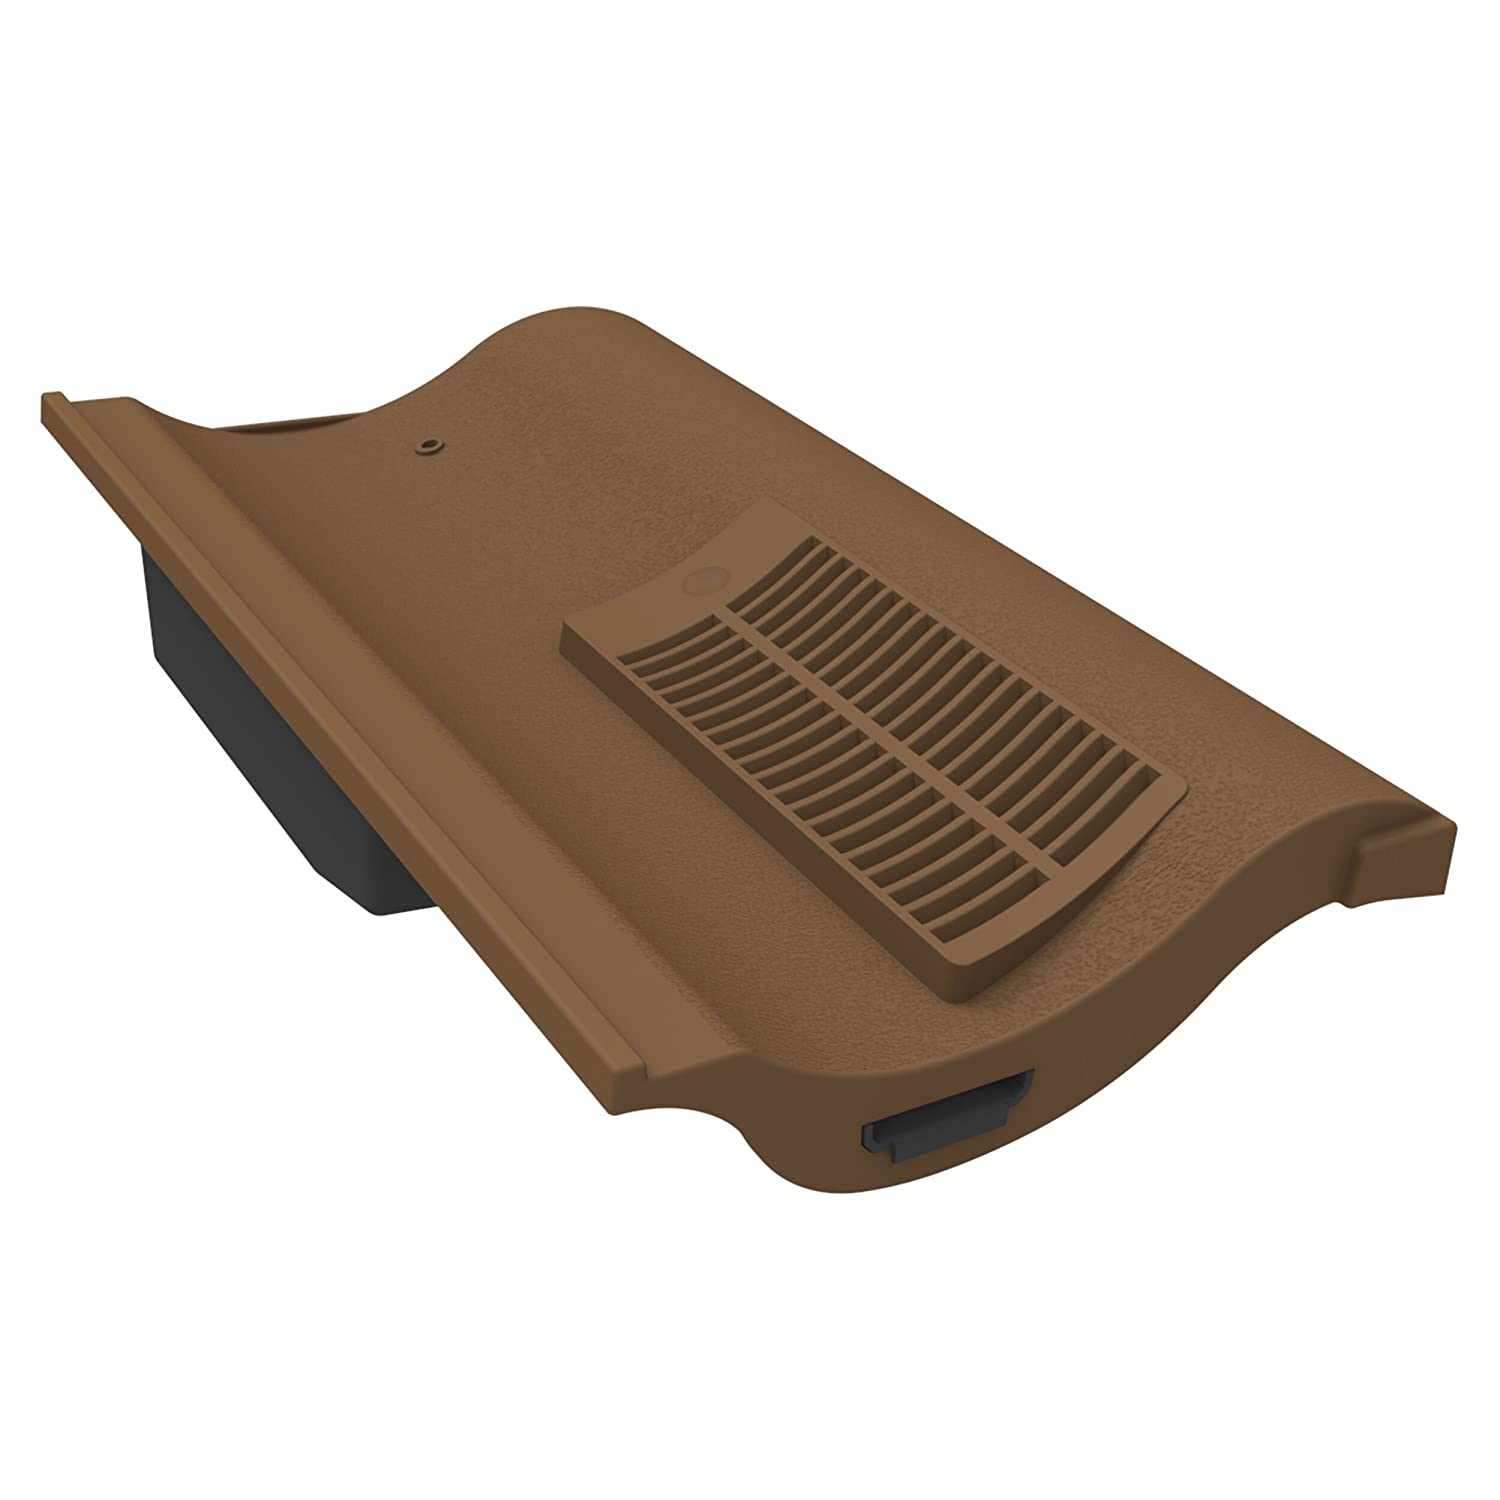 Manthorpe Single Pantile Roof Tile Vent with Pipe Adaptor to Fit Marley Anglia, Redland Fenland, Sandtoft Shire, Brown Textured Finish